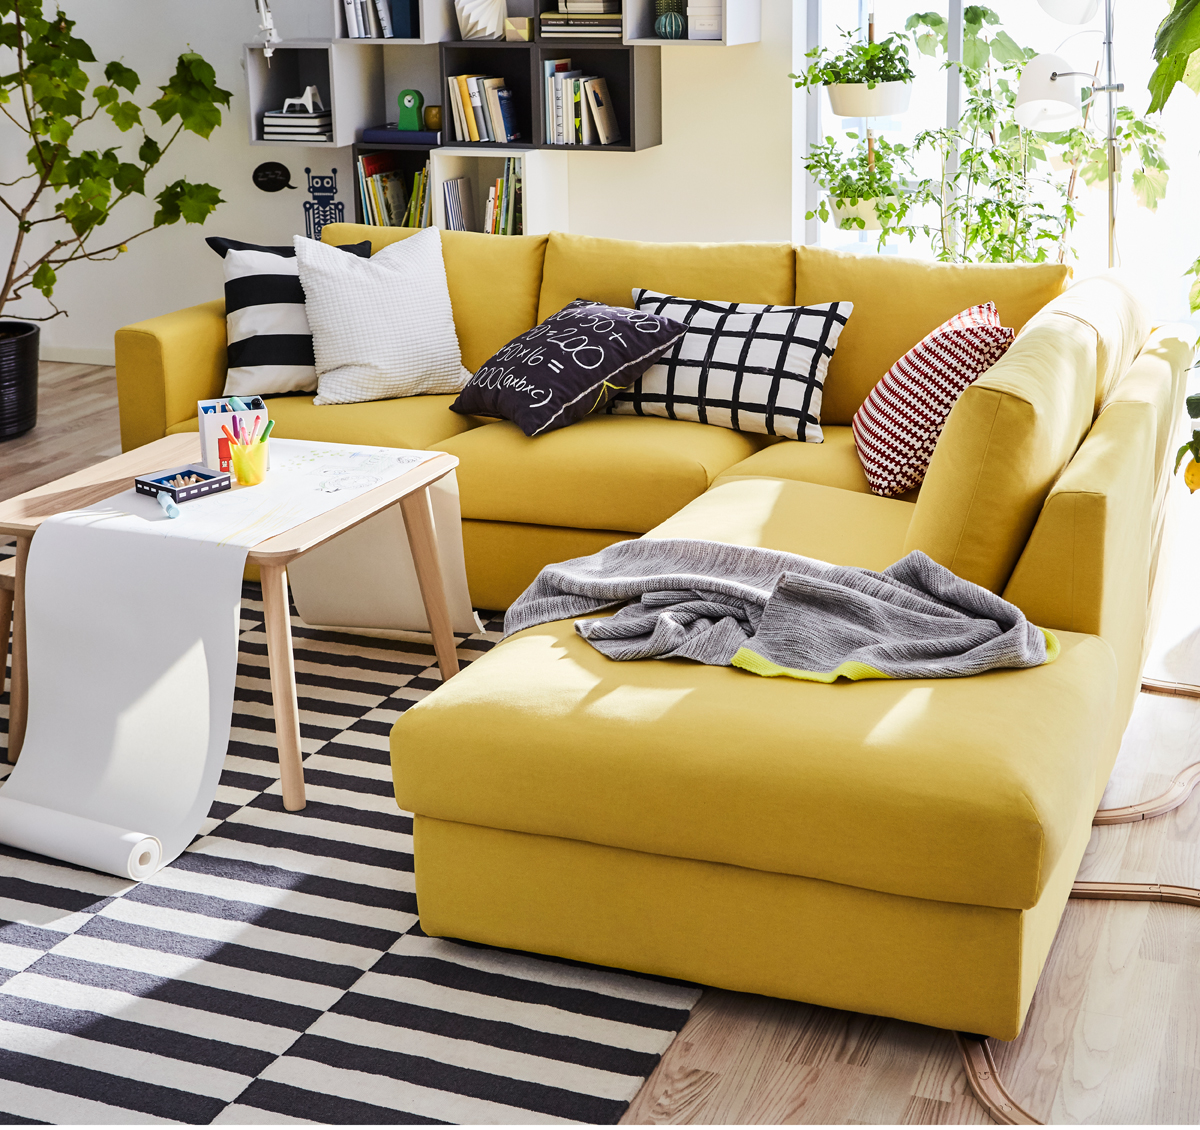 Merveilleux Golden Yellow Sectional Sofa With Patterned Cushions In A Bright And Green  Space.